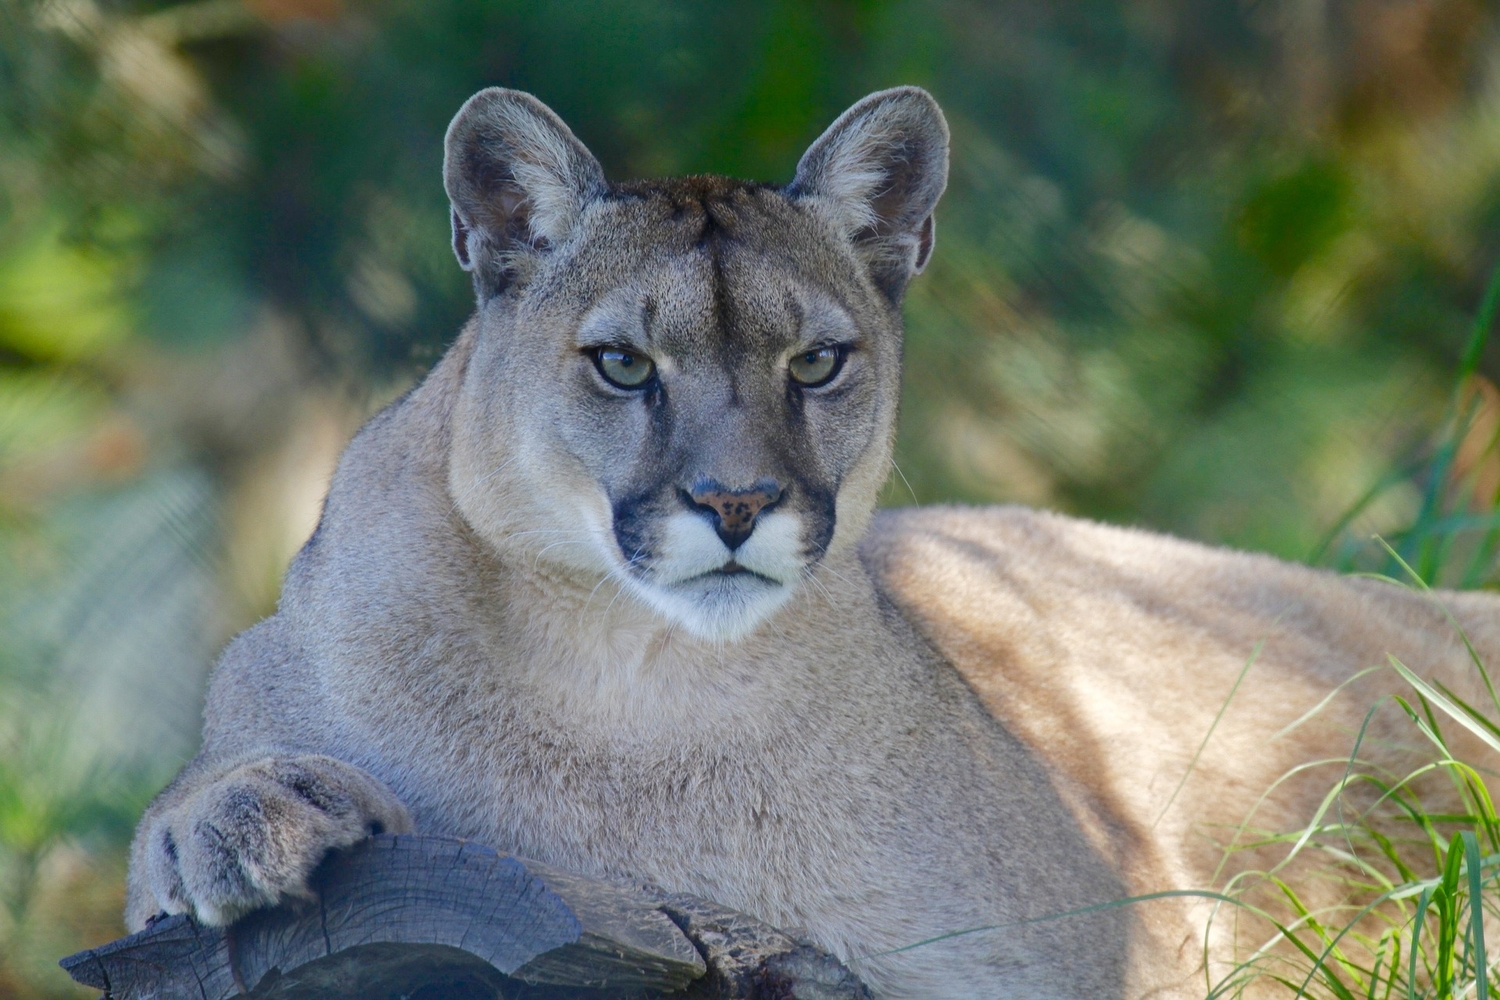 How to survive a mountain lion encounter